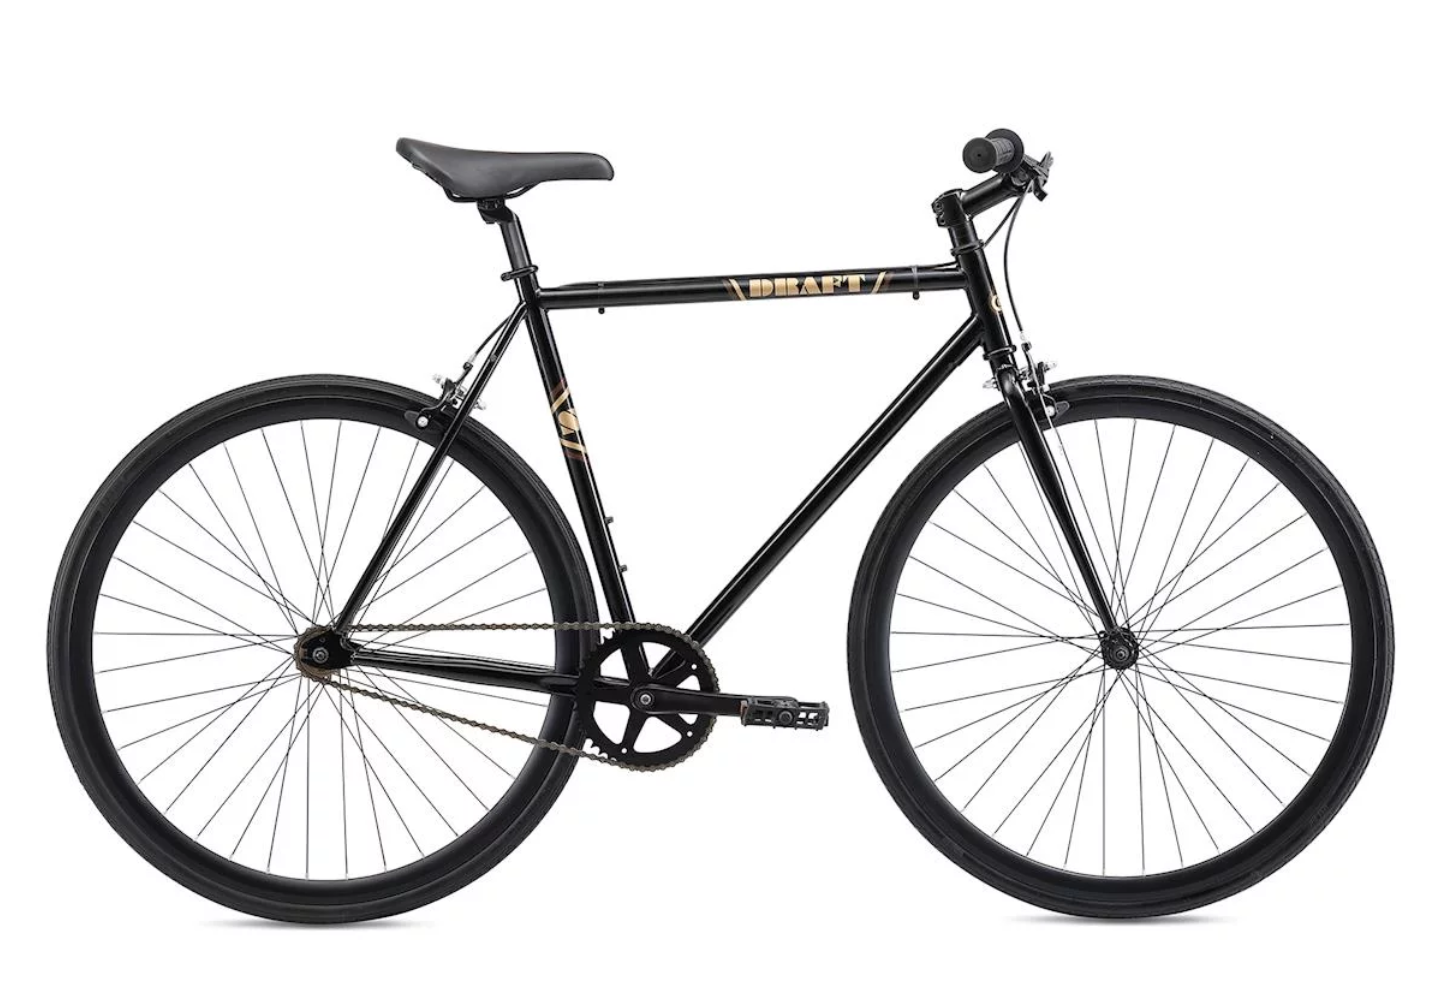 90e95e4350a Best Fixie Bikes - Fixed Gear Bikes 2019